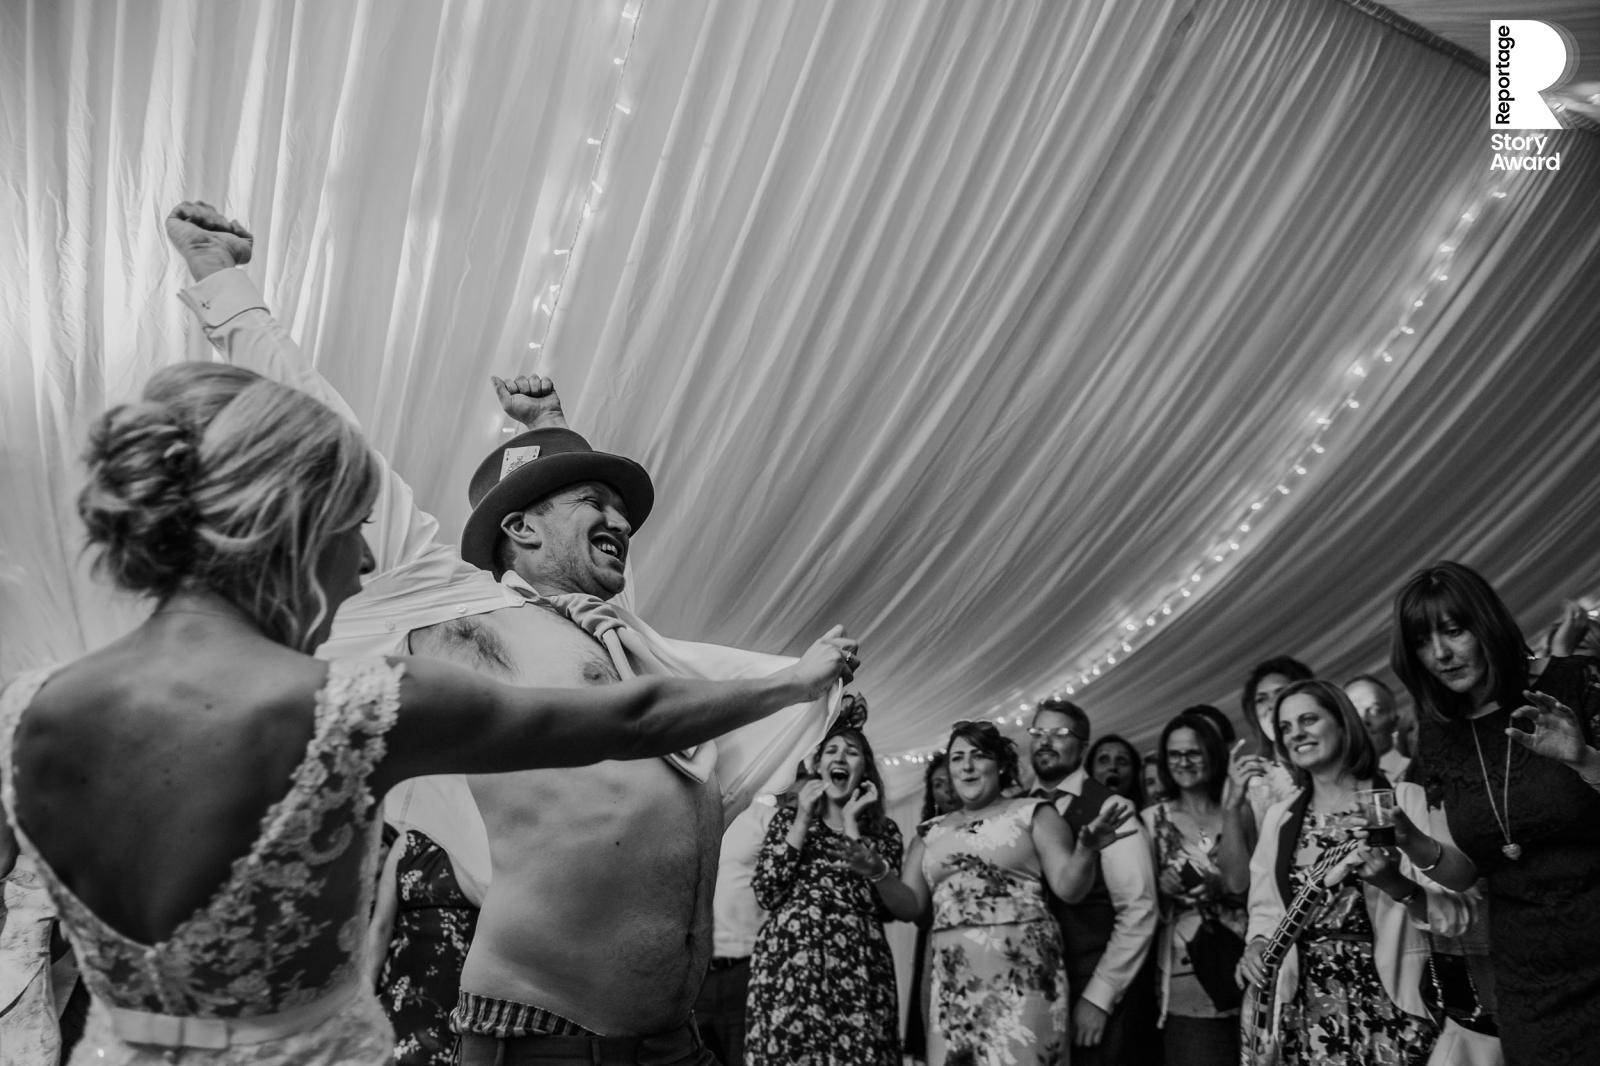 bw photo of the bride opening the grooms shirt on the dance floor while the guests cheer